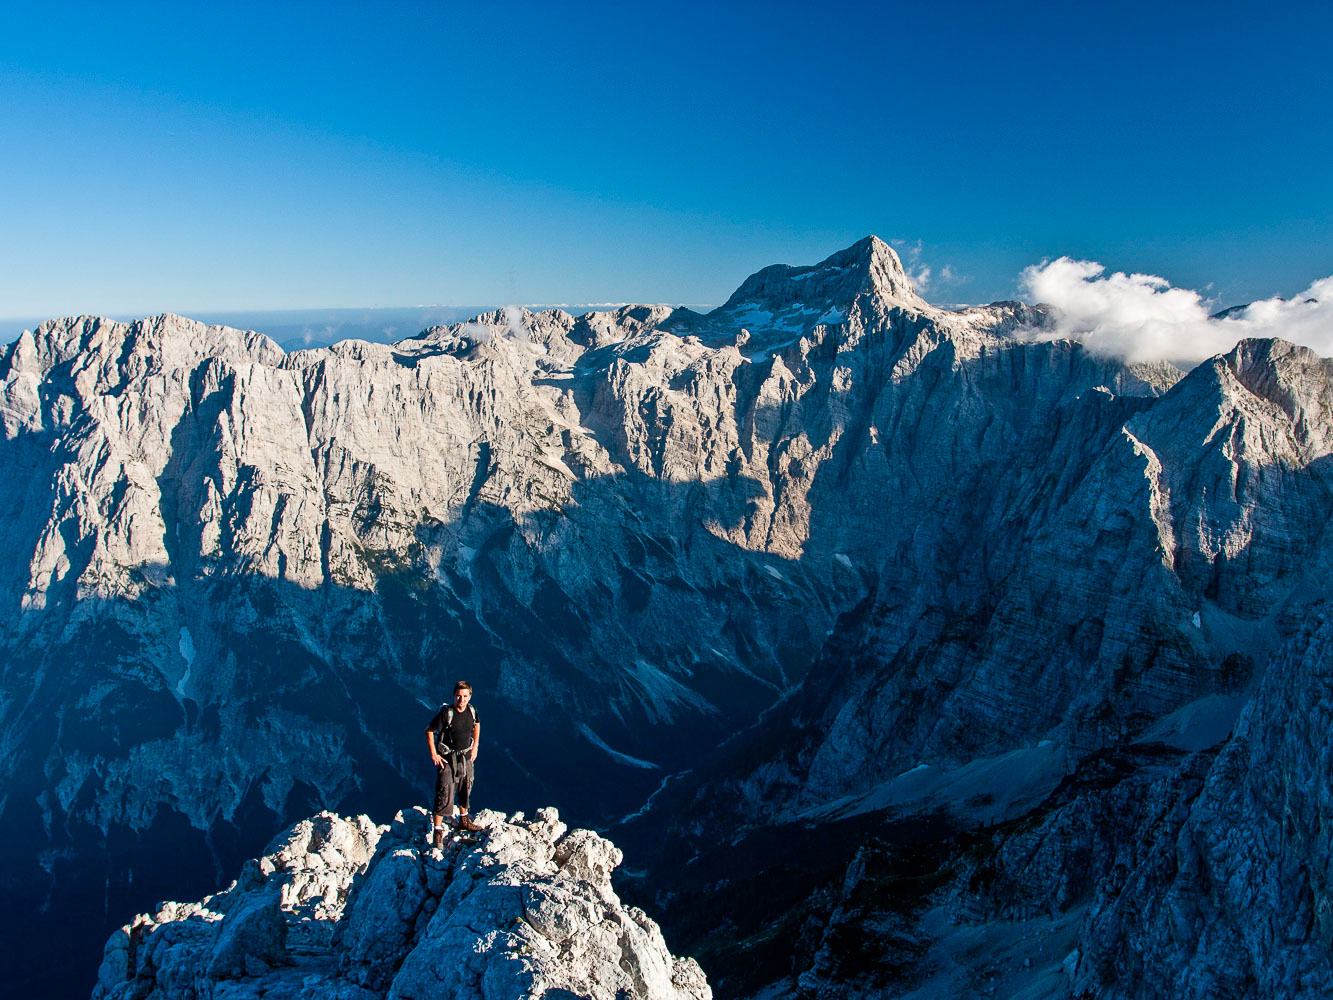 hiking-julian-alps-slovenia-slotrips-5